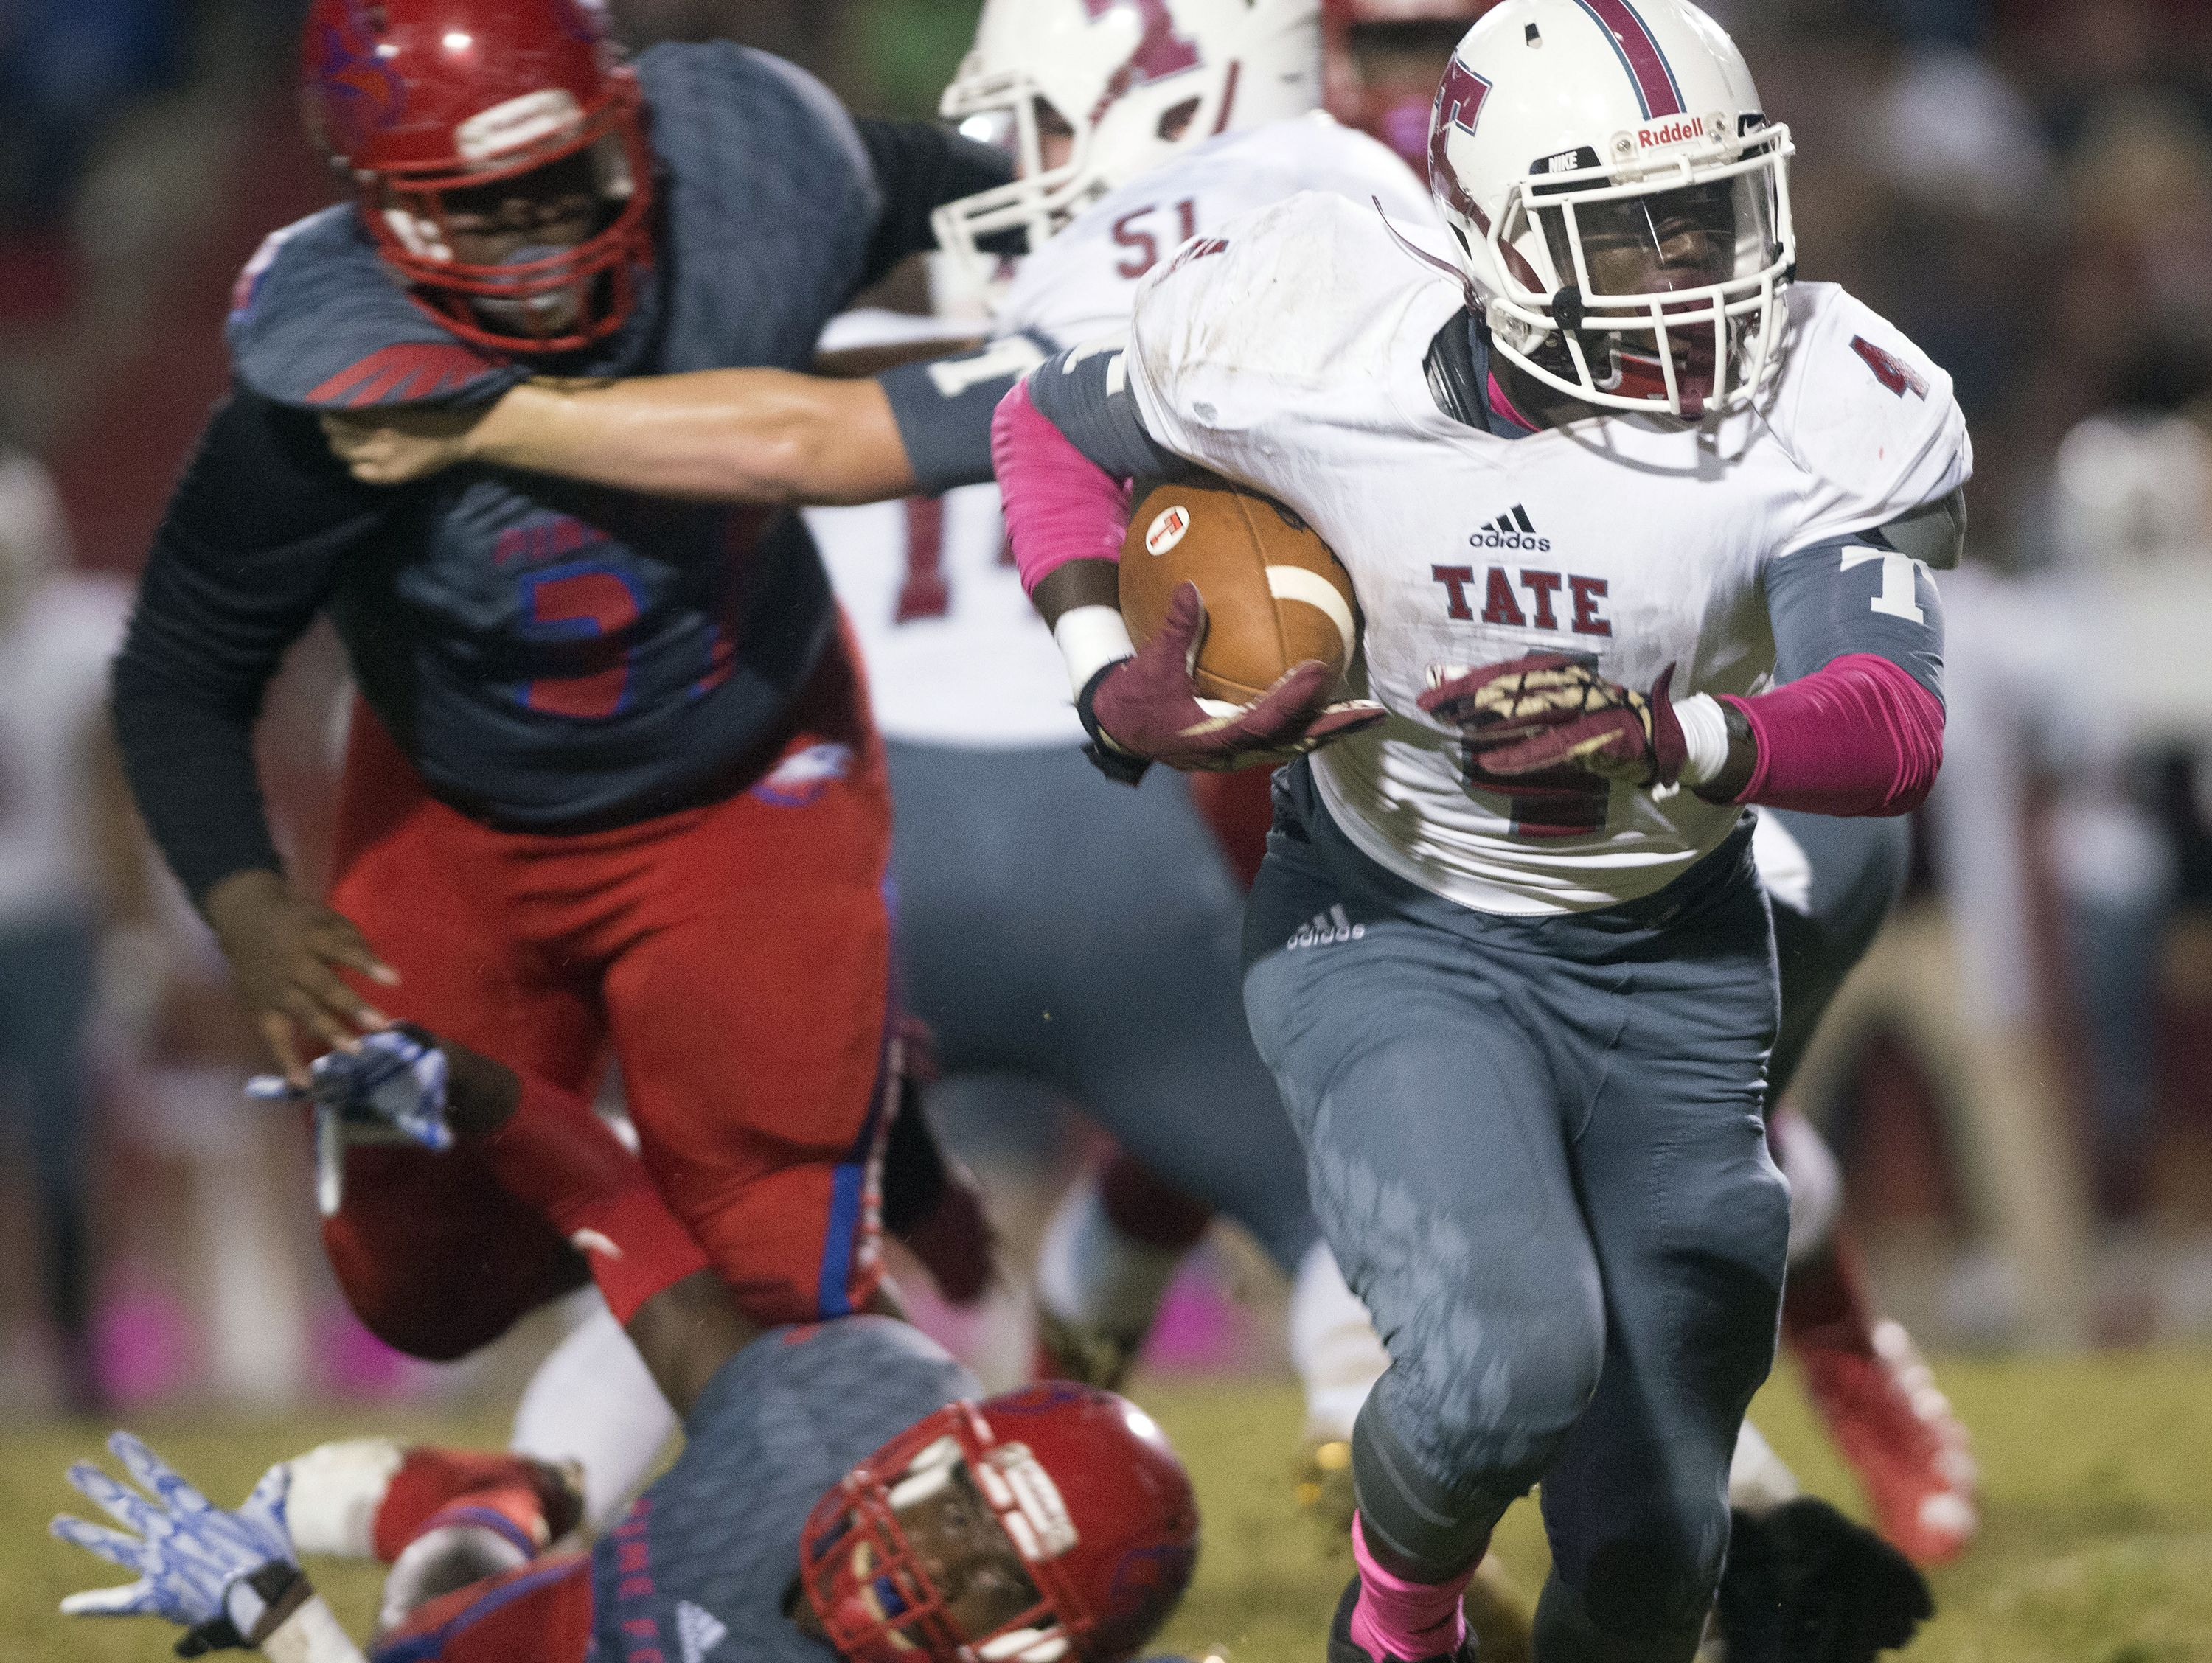 Tate running back, Ladarryl Paige, (No.4) breaks through the Pine Forest defensive line for extra yards during Friday night's winner take all district game.